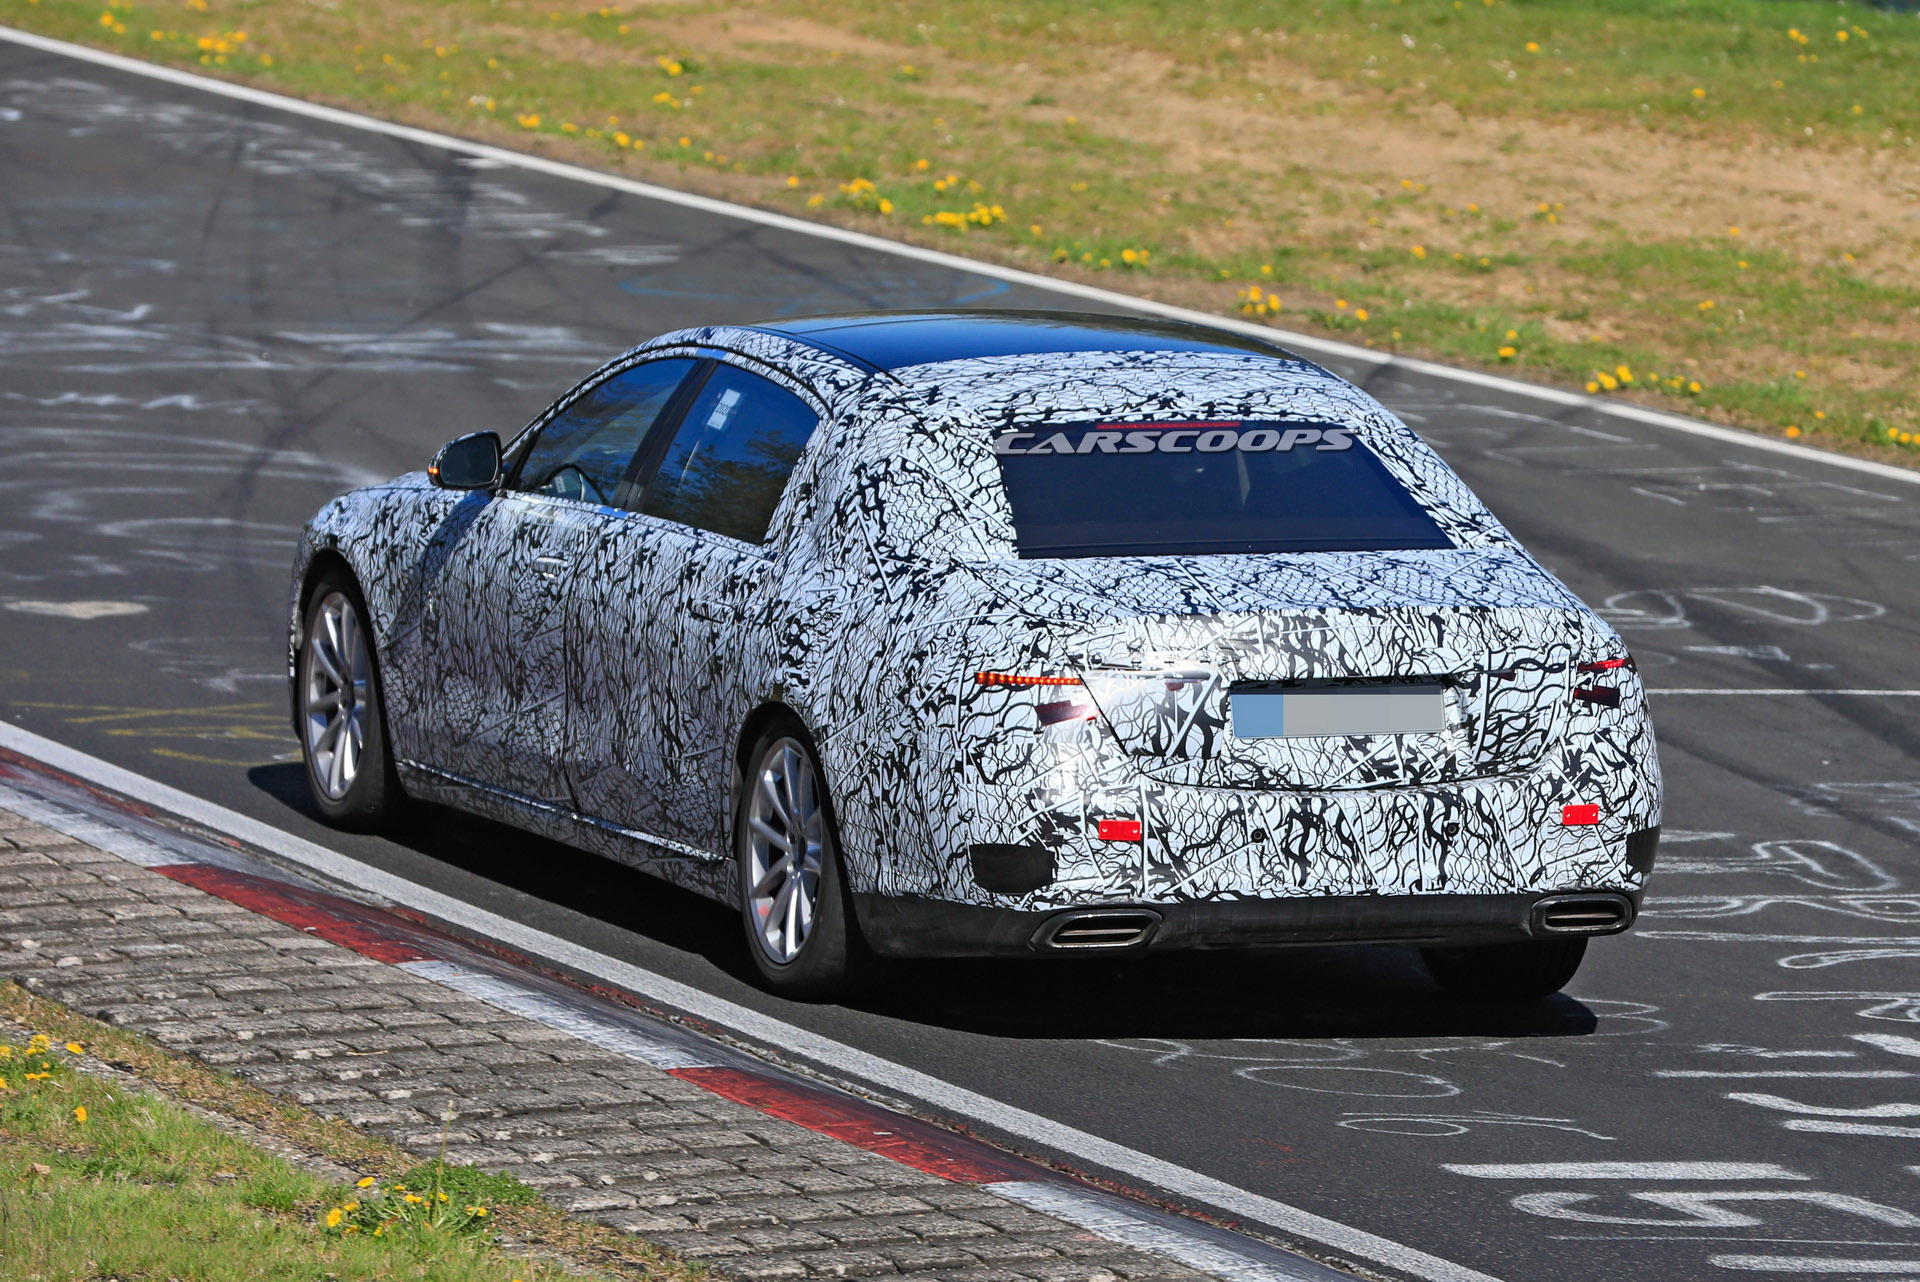 Mercedes-Maybach Classe S 2021 Nurburgring foto spia